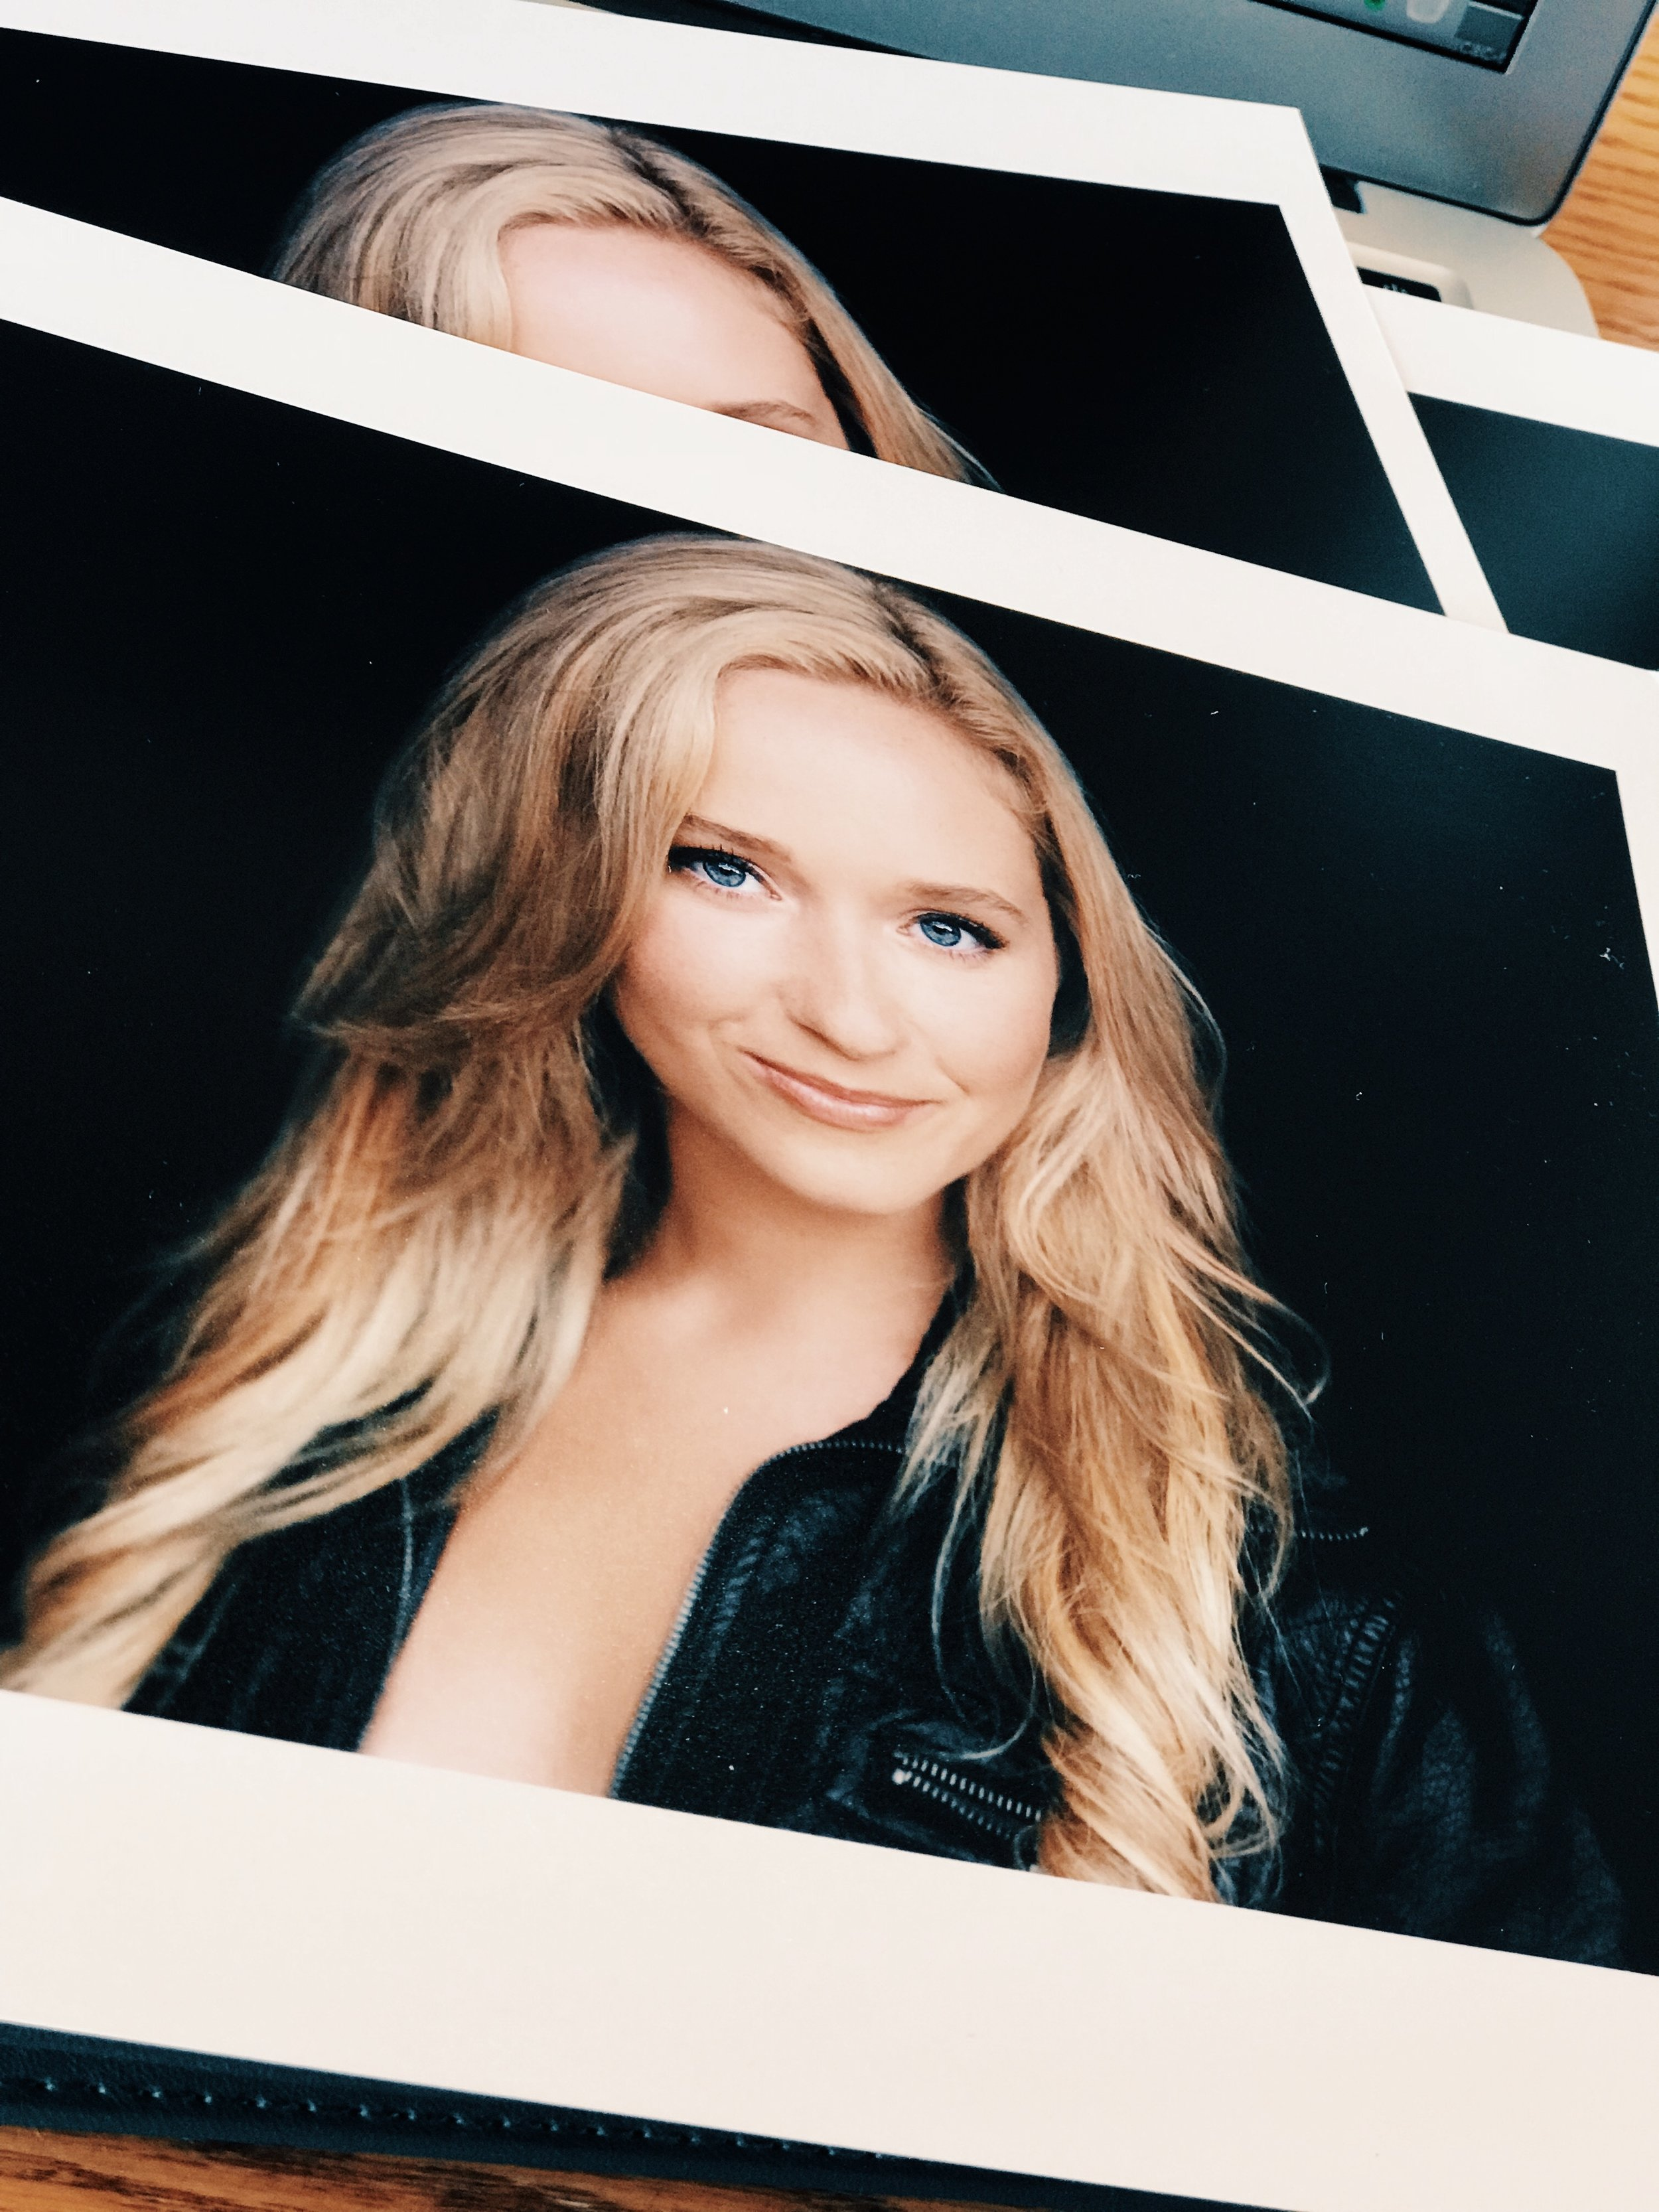 Headshots by Nathan Johnson, printed by Reproductions